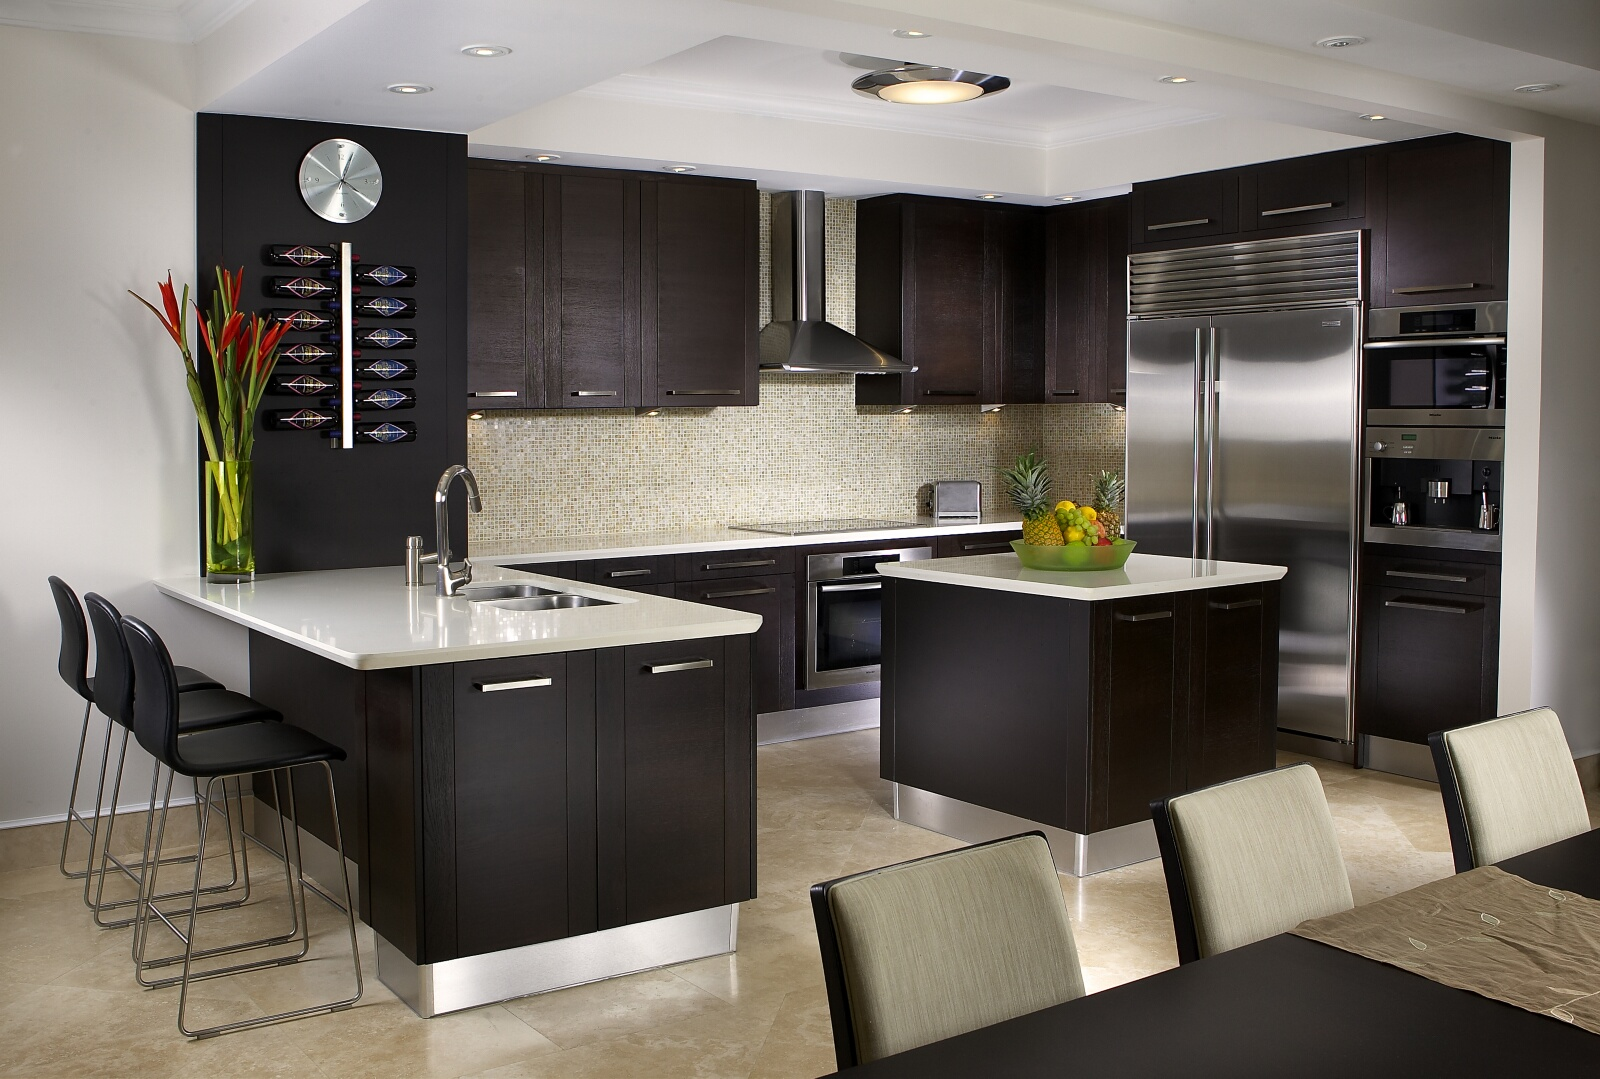 Kitchen interior design services miami florida for Interior designs of cupboards